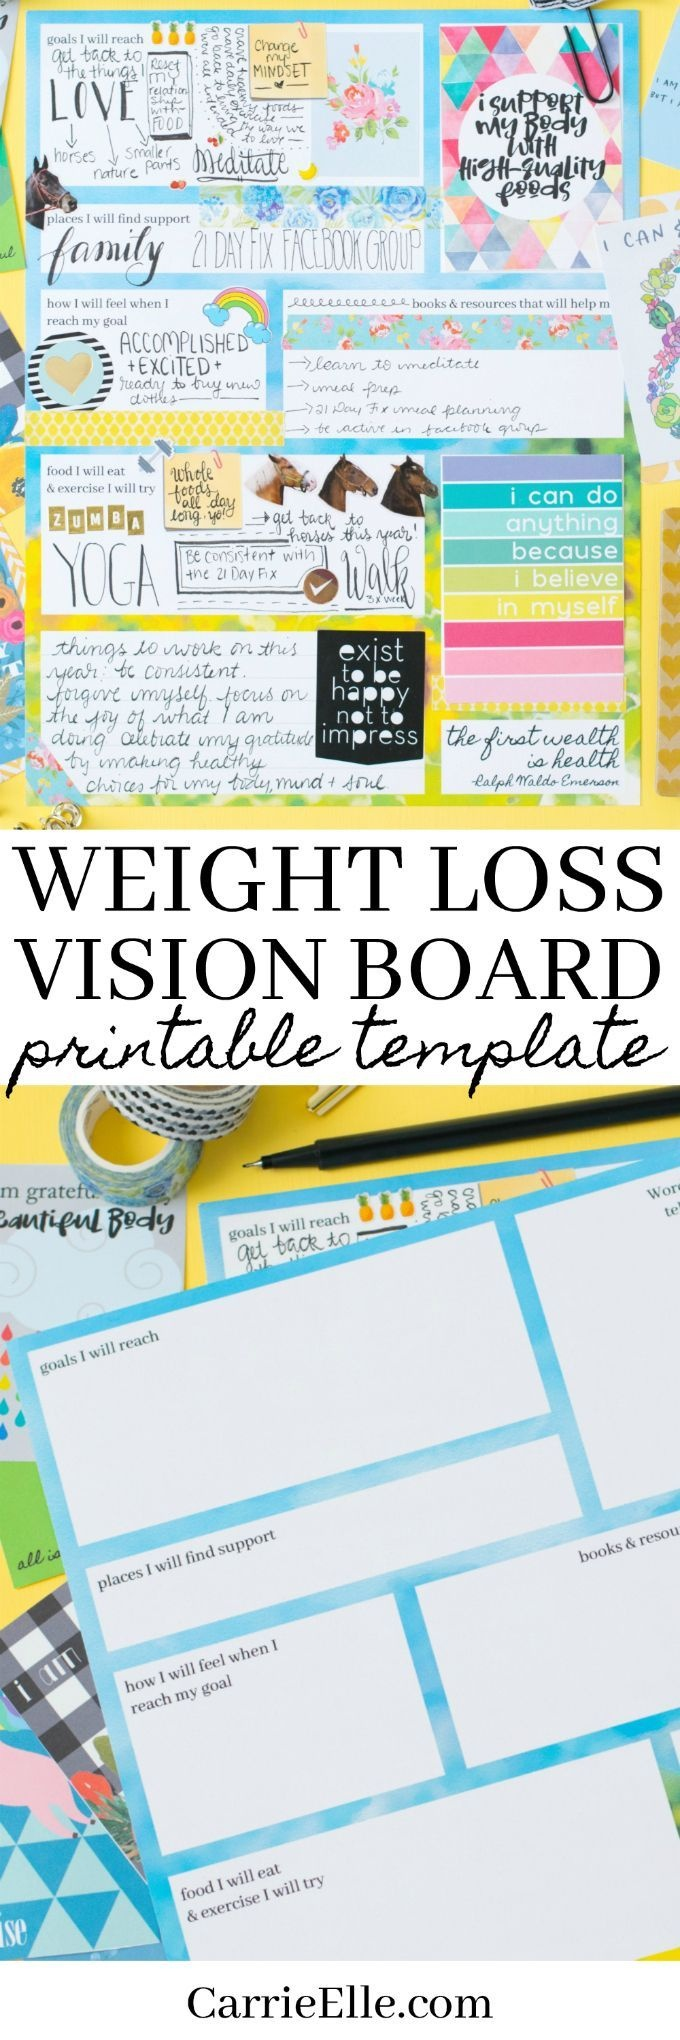 Printable Weight Loss Vision Board Template   Weight Loss   Vision - Free Weight Loss Vision Board Printables